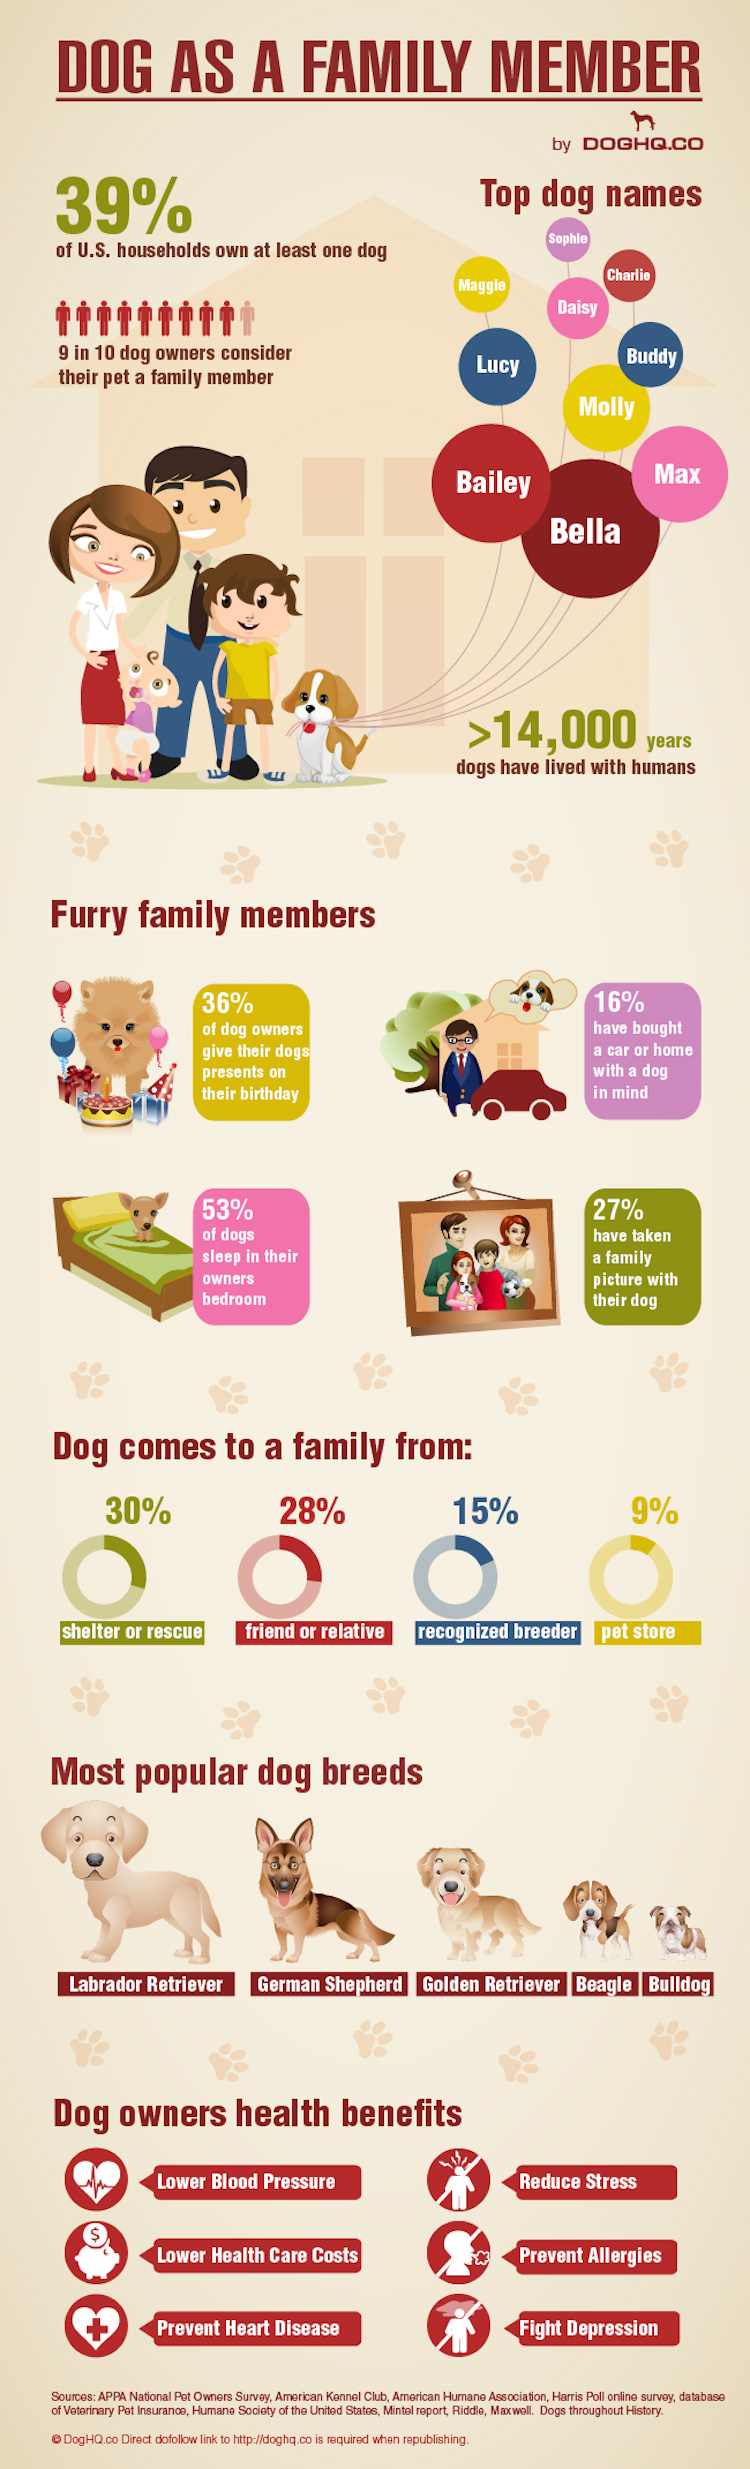 Dog-as-a-family-member